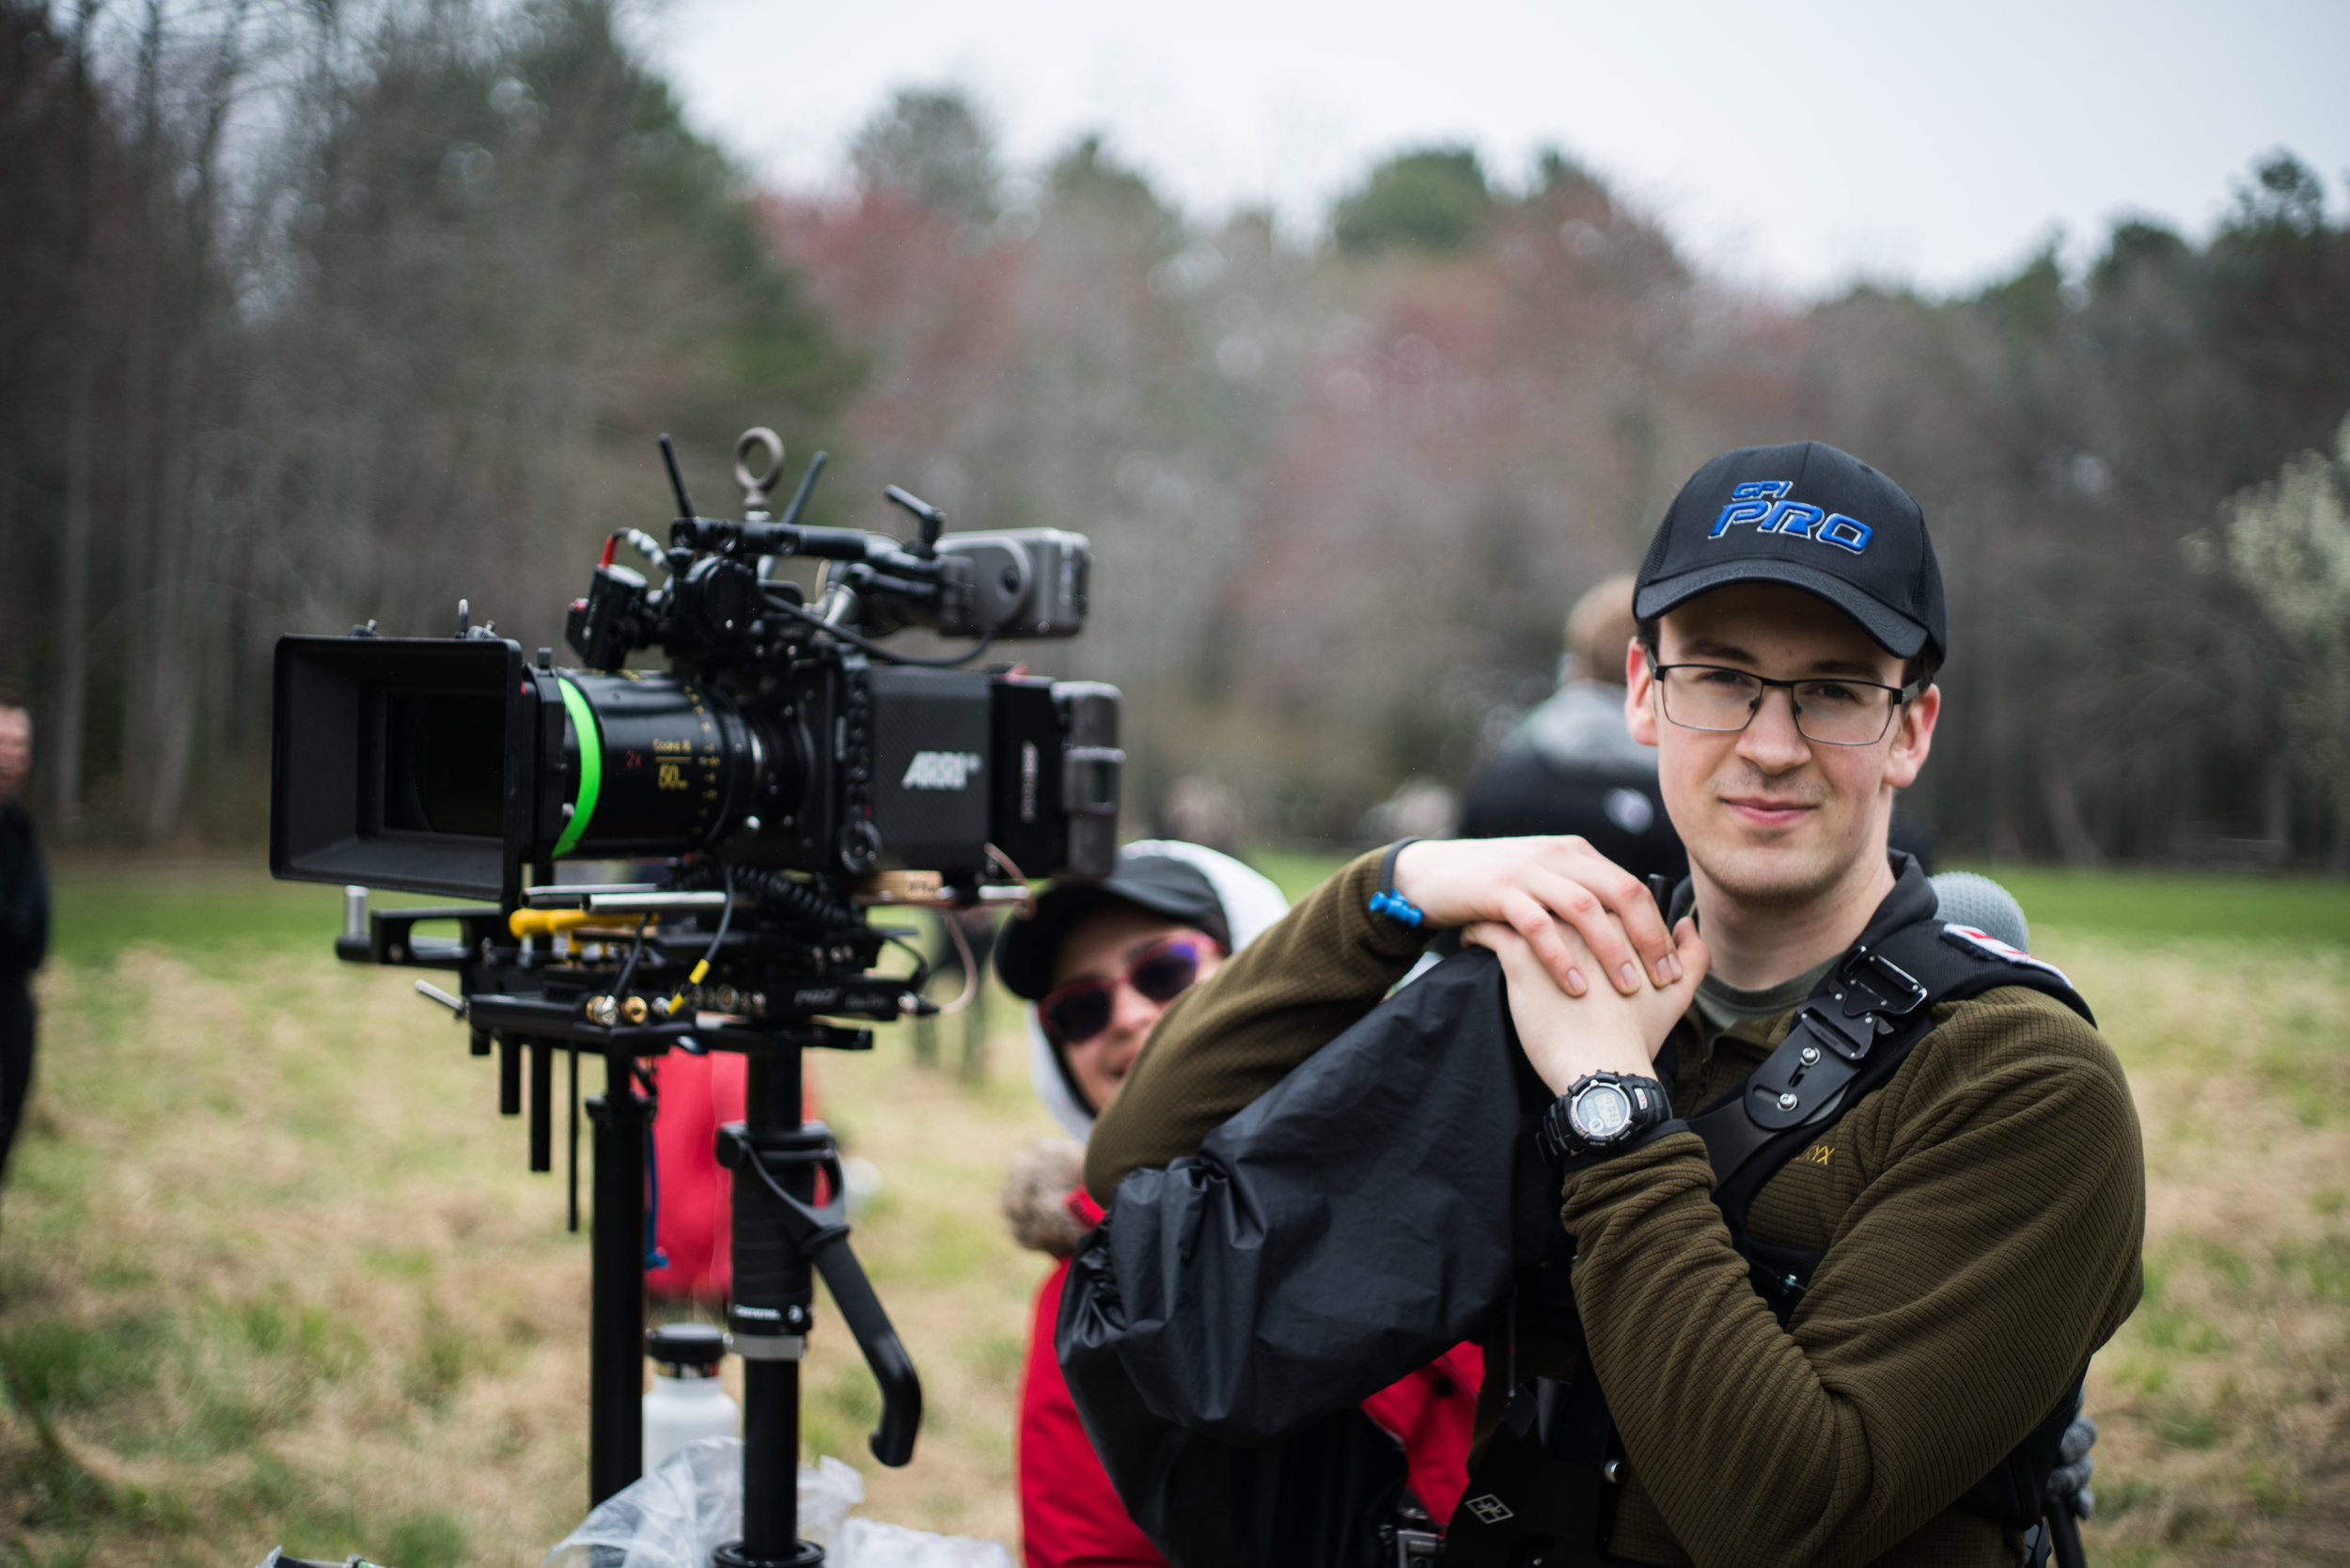 Calvin with Our build: An Arri Mini w/ Cooke Anamorphics.